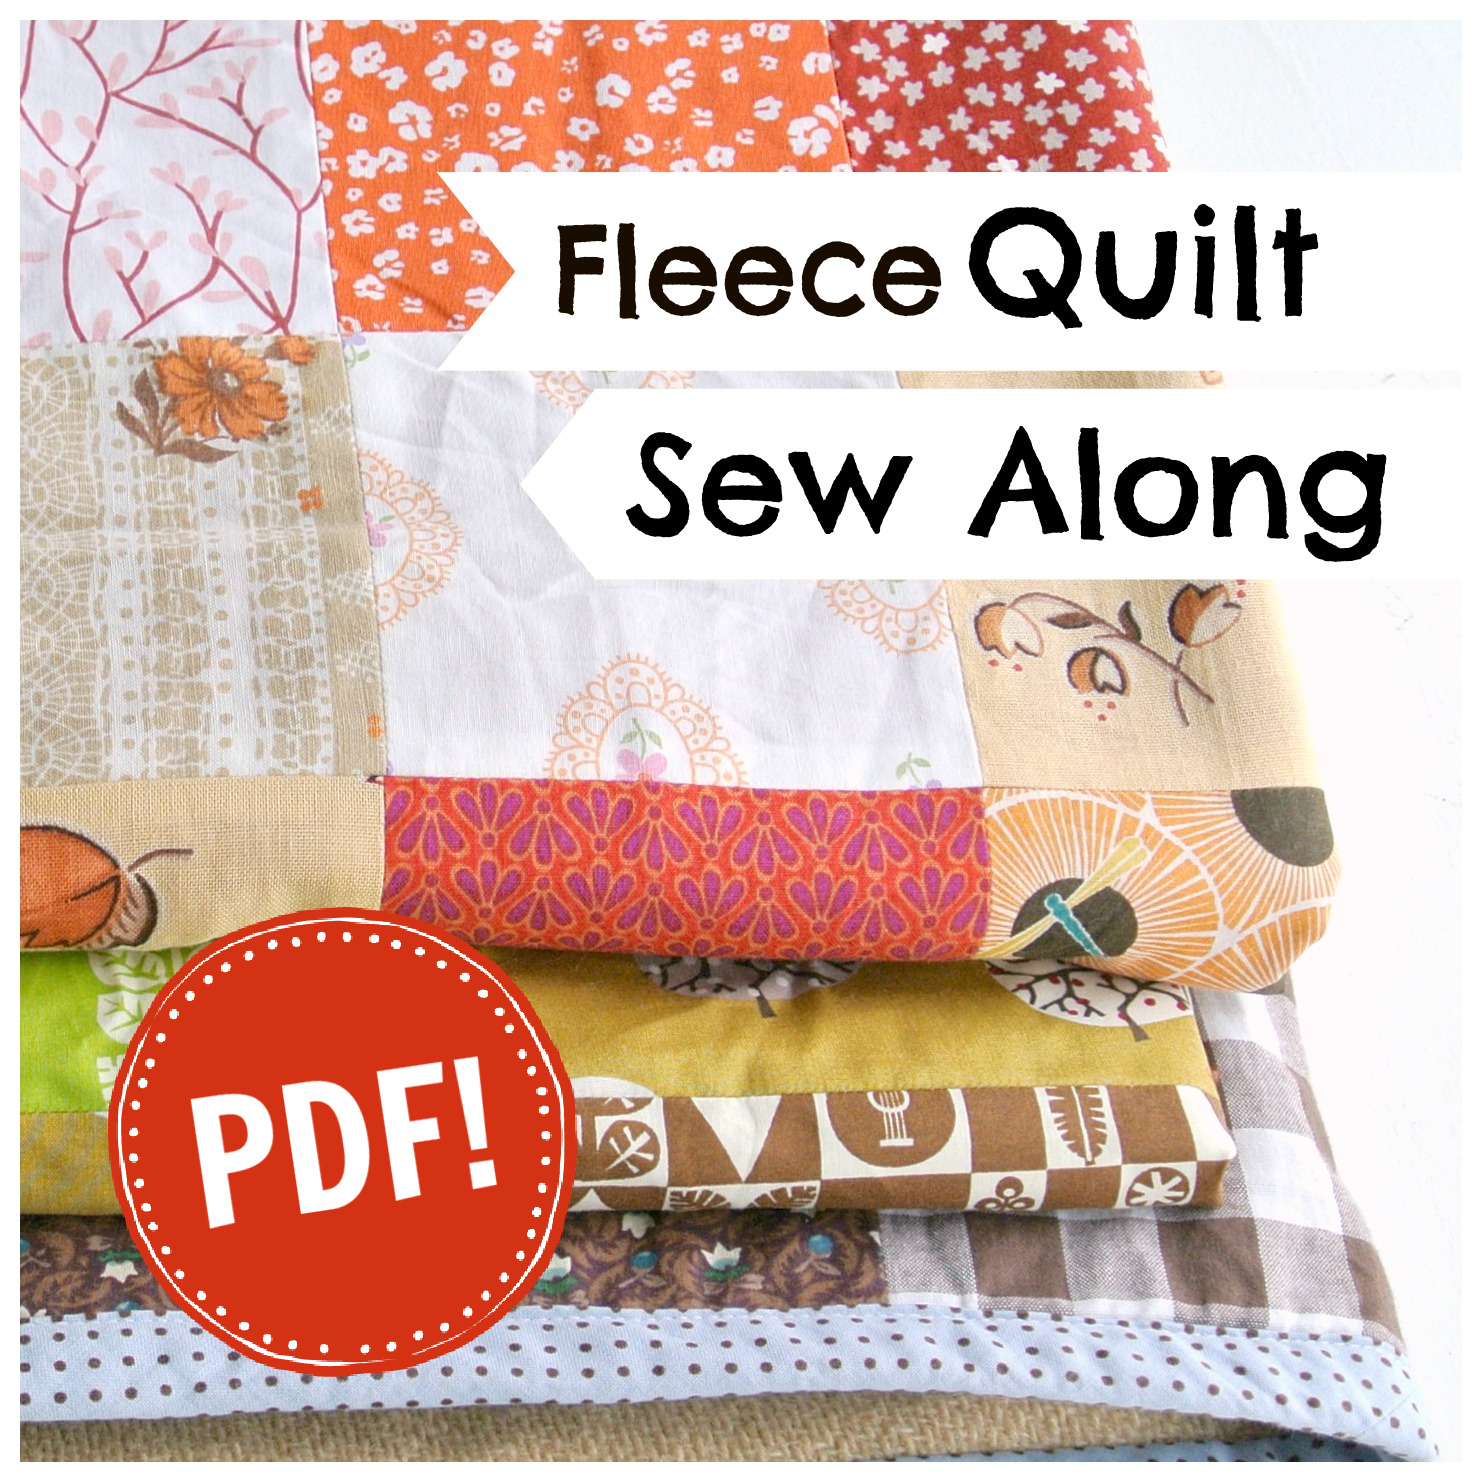 Fleece Quilt SewAlong PDF